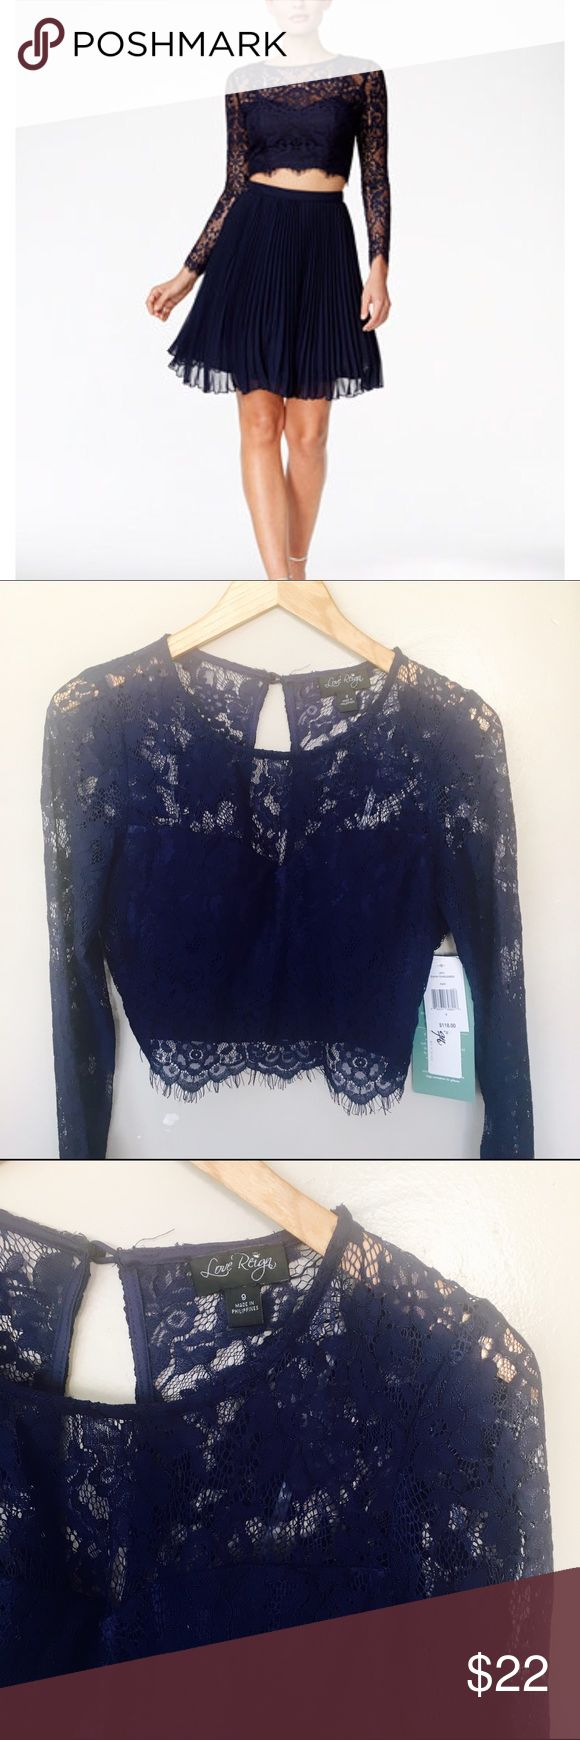 NWT Love Reing lace crop top Love Reing by as u wish navy blue crop top with long sleeve sz9 Tops Crop Tops